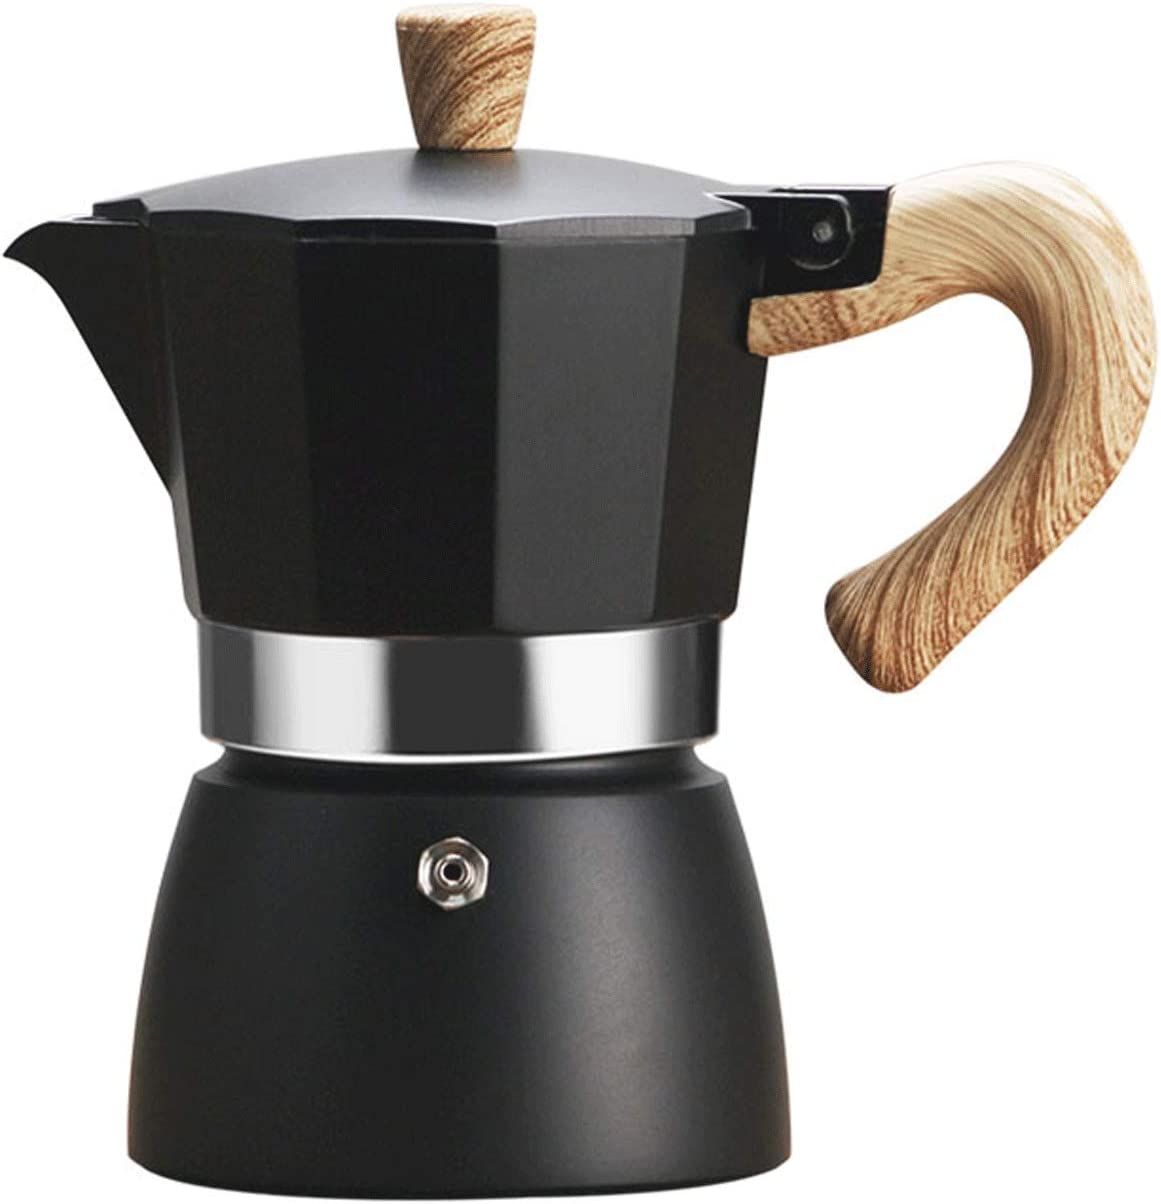 Moka Pot Omaha Mall Octagonal Classic Home NEW before selling Brewing Hand Machine Coffee Ital